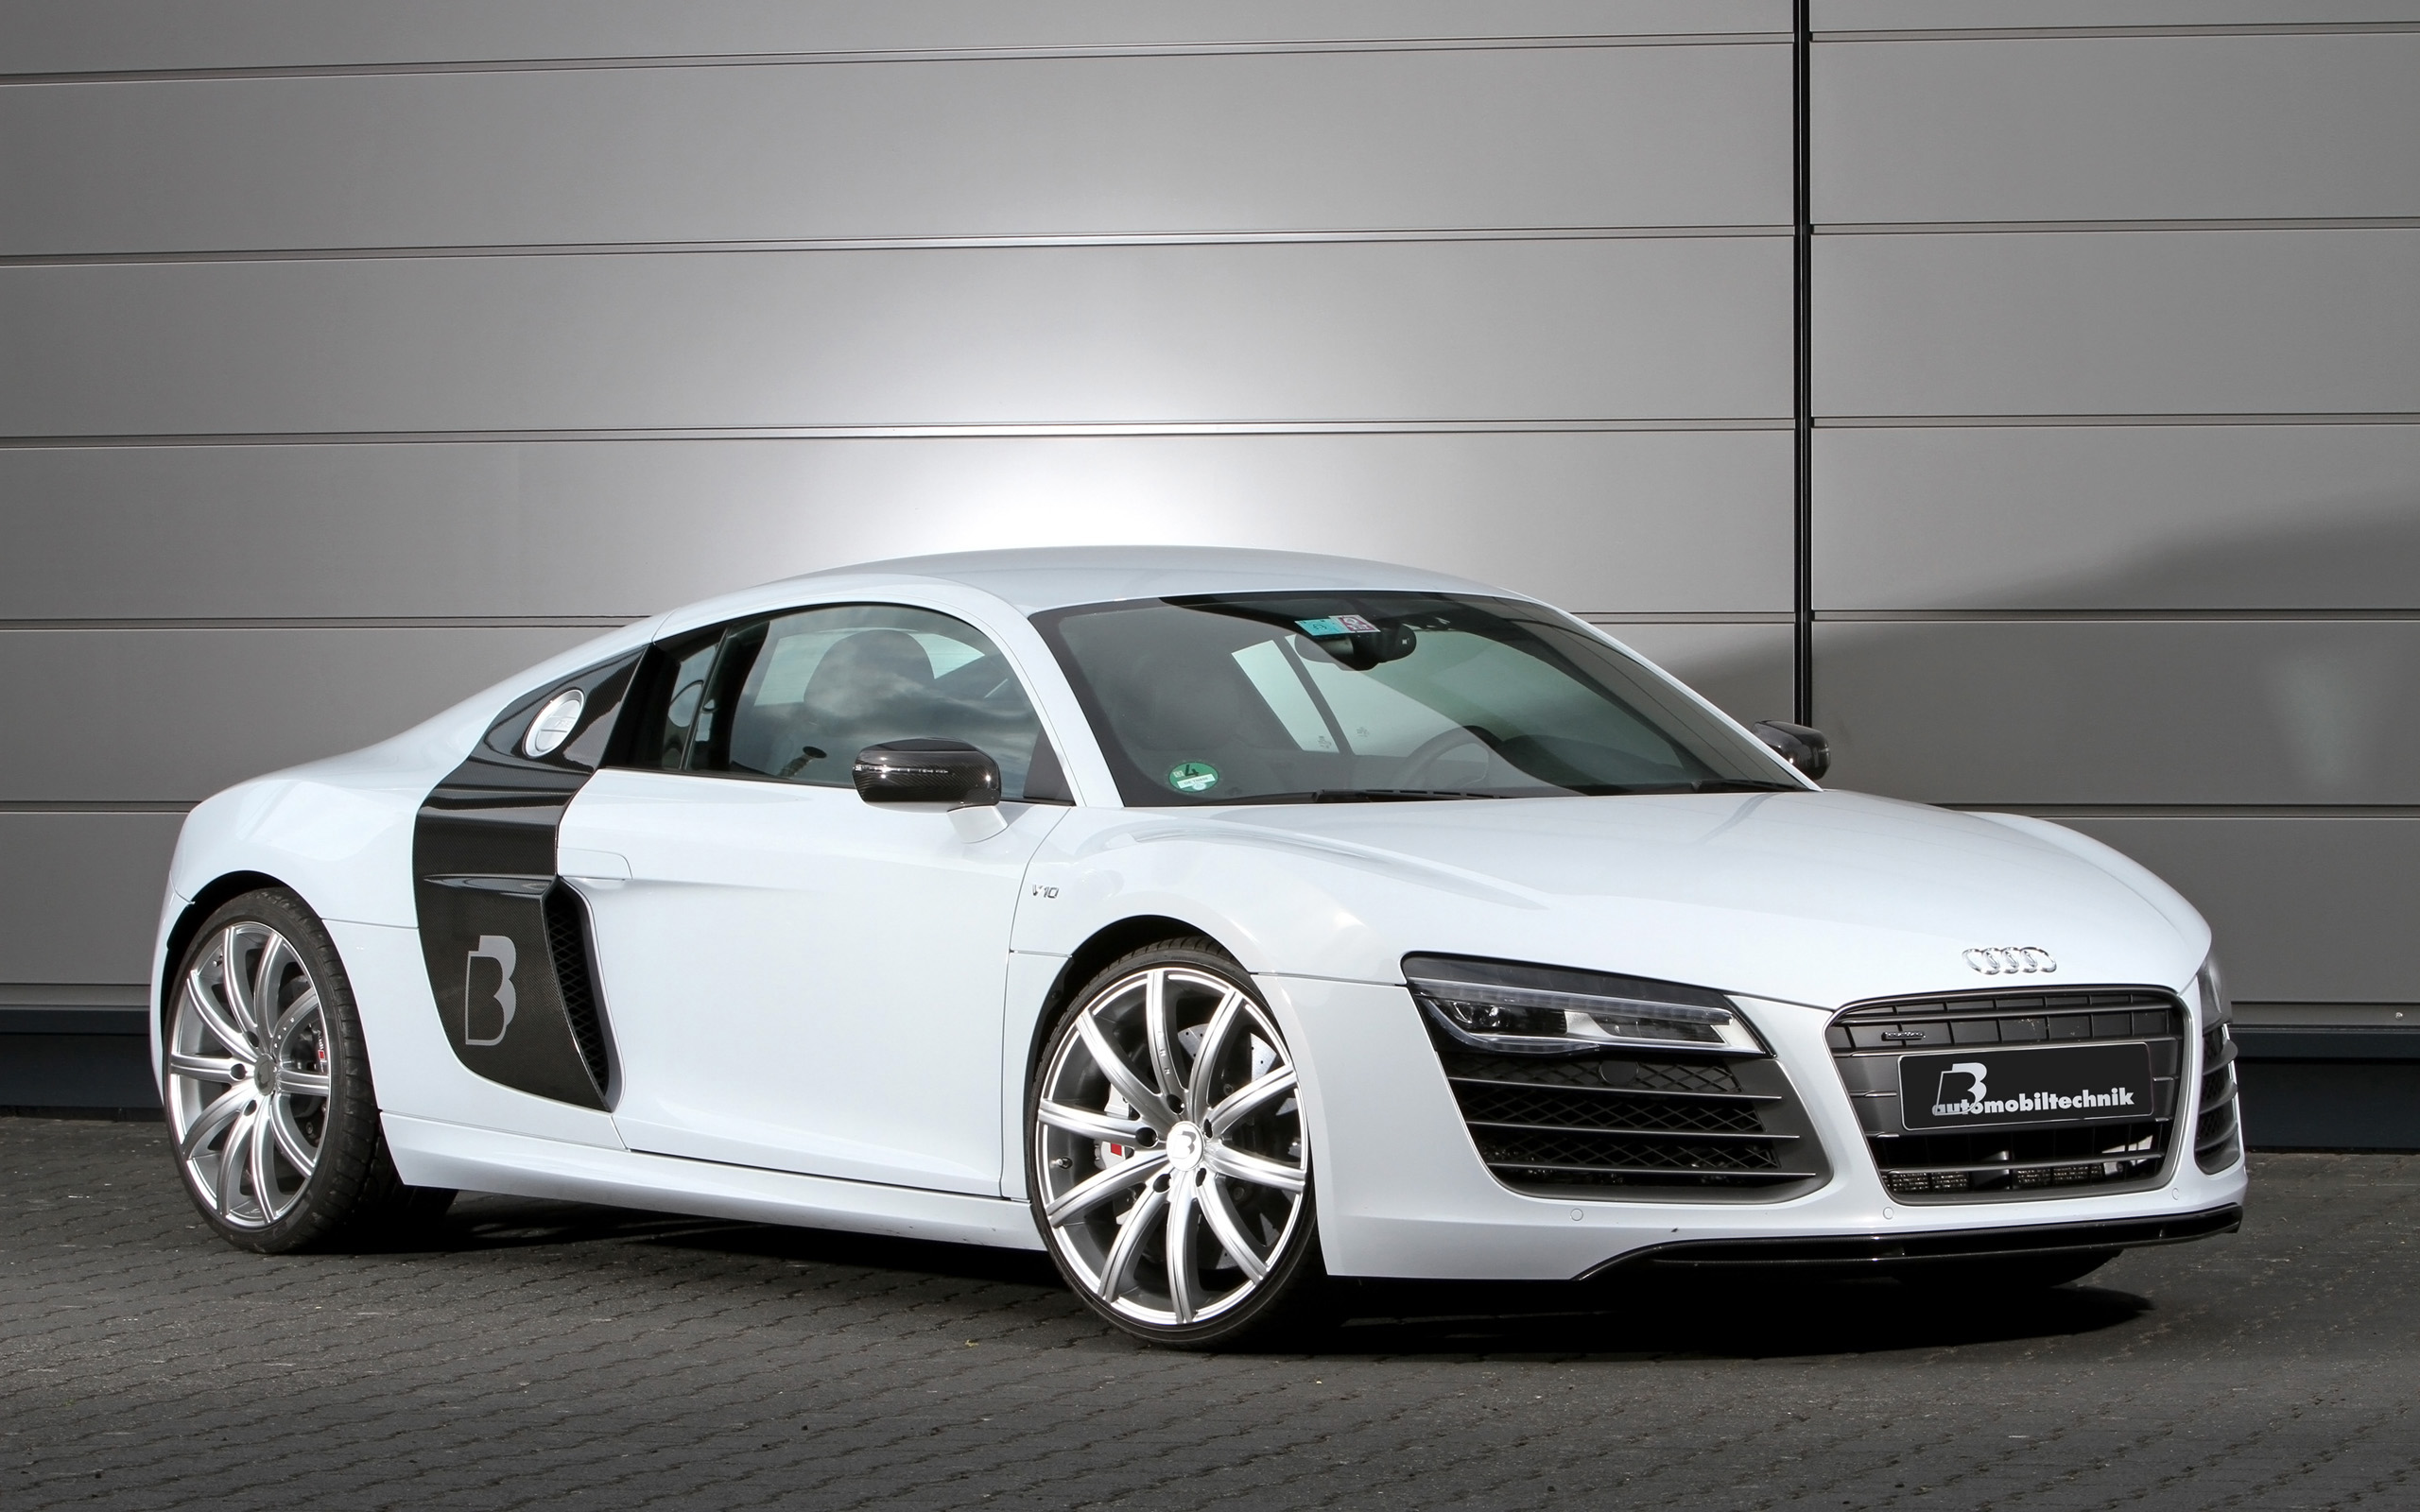 BB Automobiltechnik Audi R8 V10 Plus Wallpaper HD Car Wallpapers 2560x1600